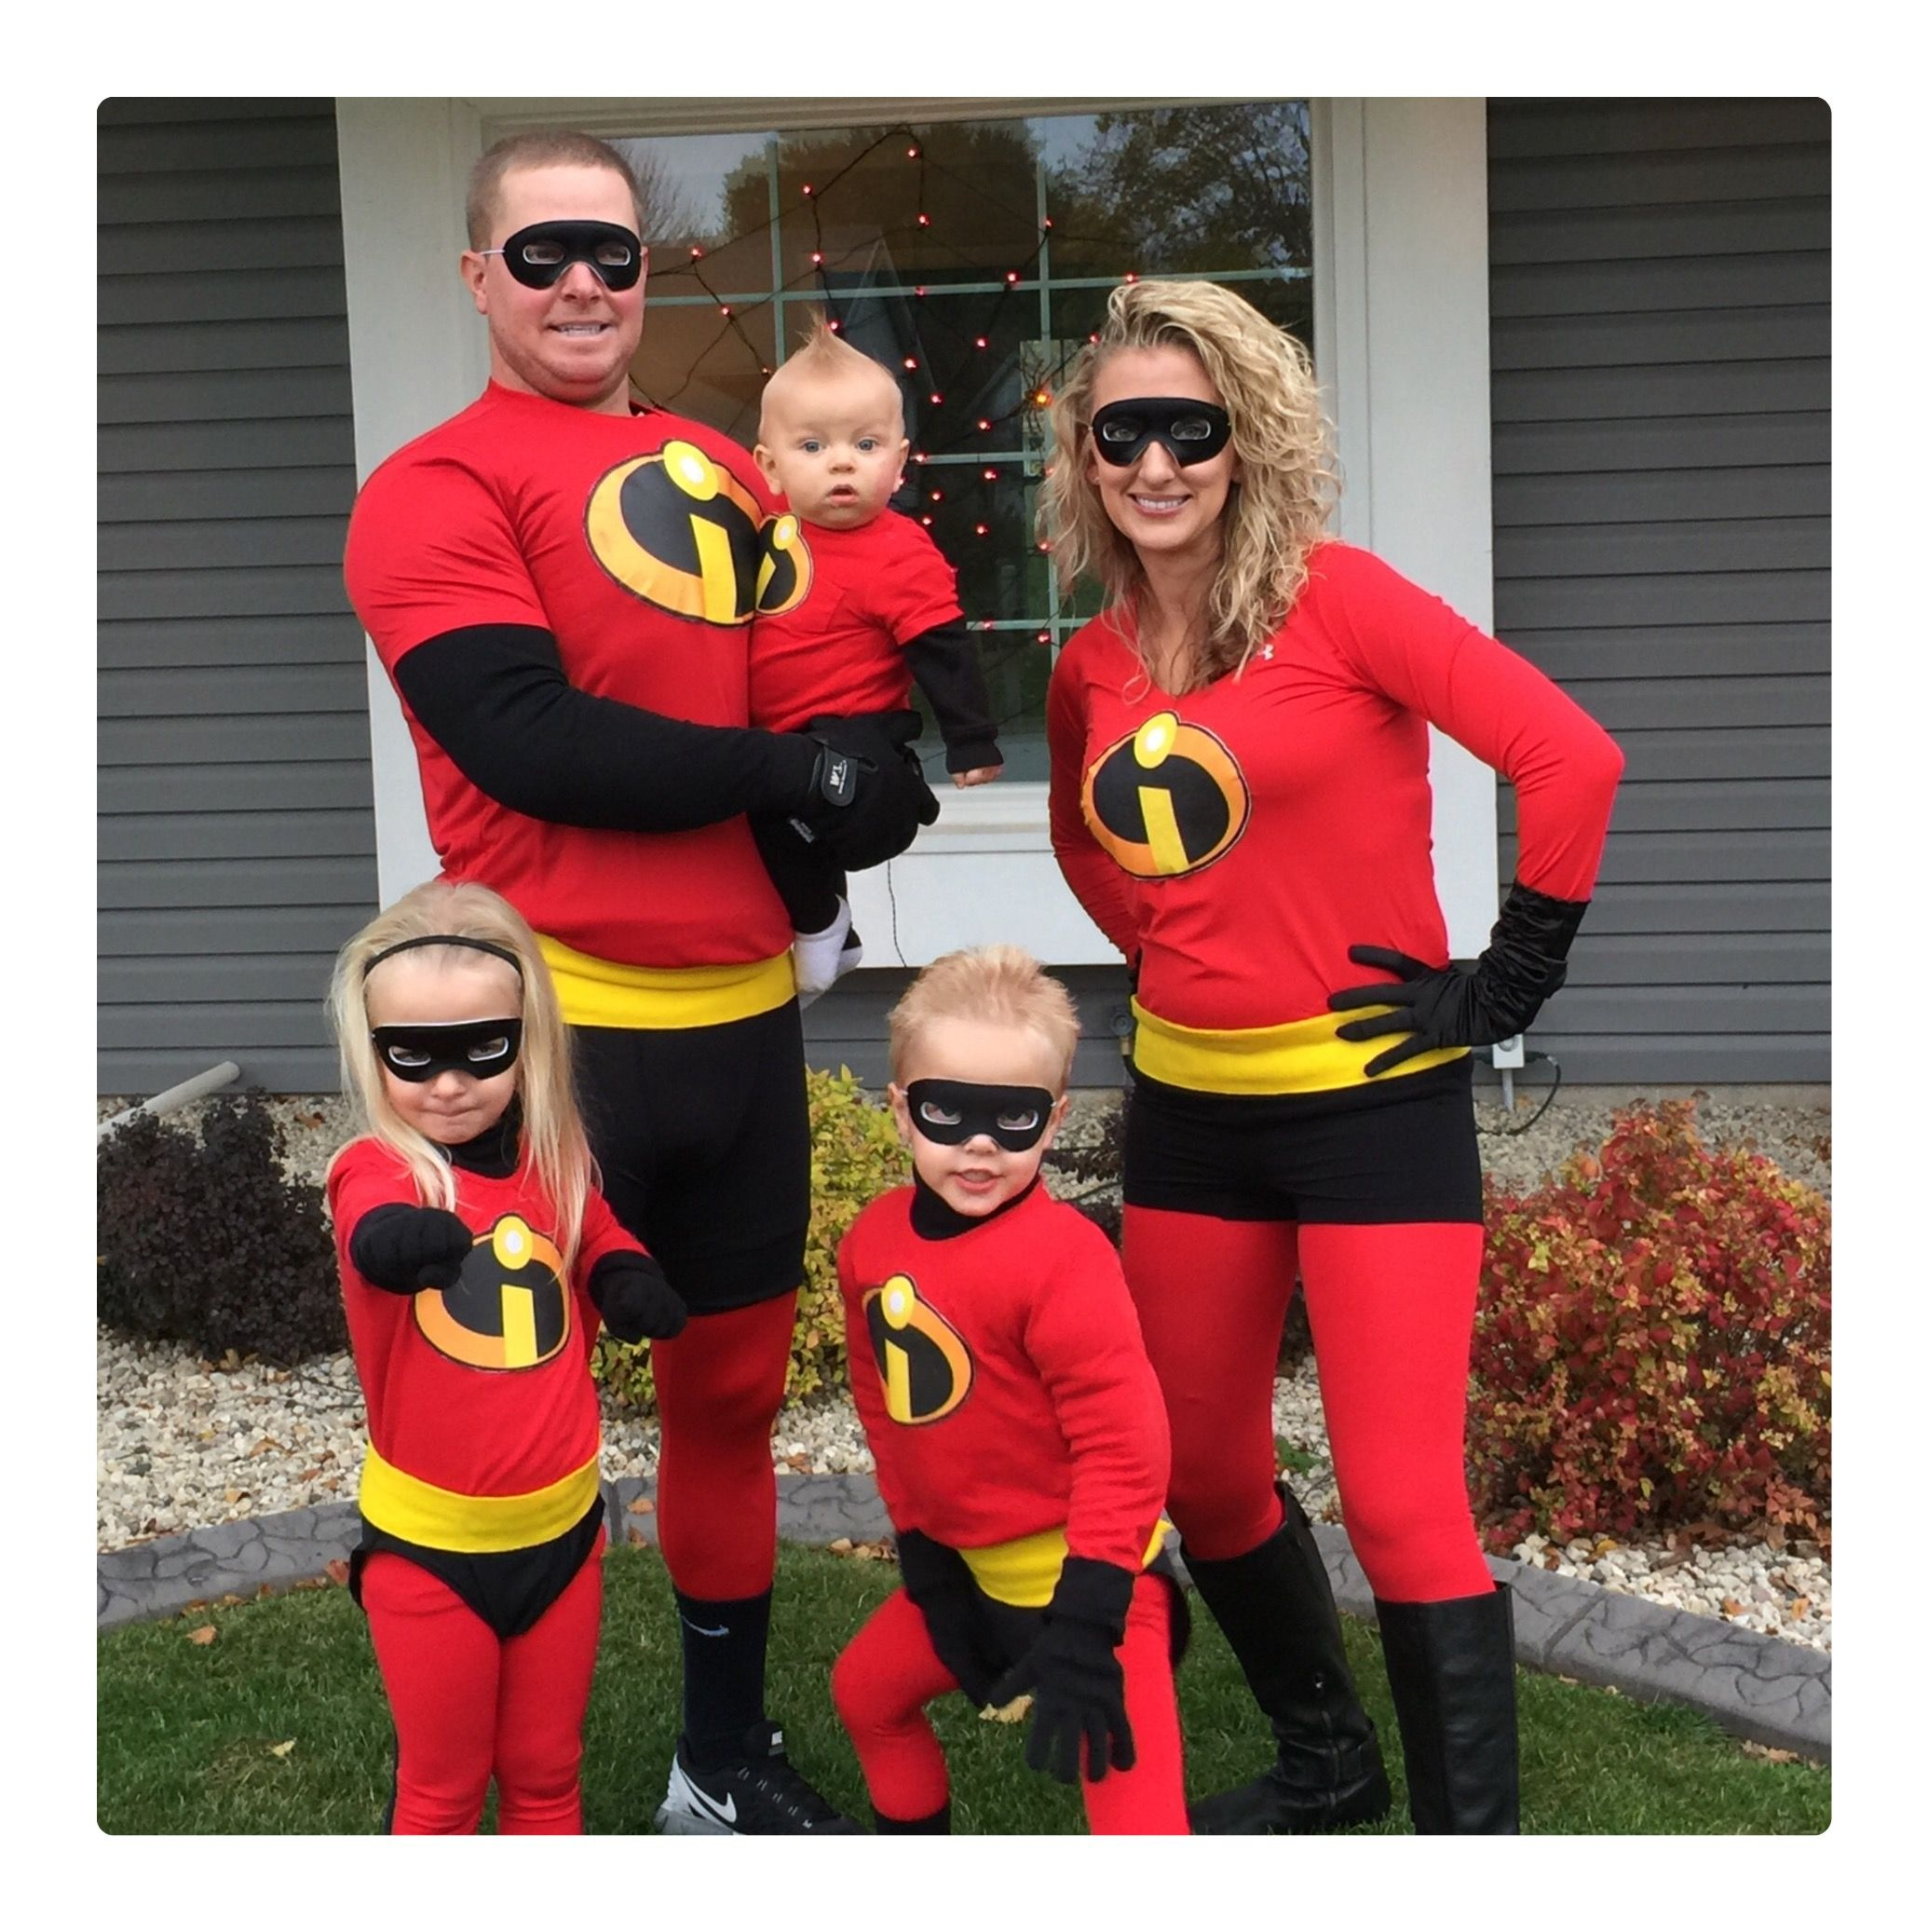 Halloween Trick Or Treat The Incredibles Family Costume Family Of 5 Family Halloween Costumes Disney Halloween Costumes Incredibles Costume Family